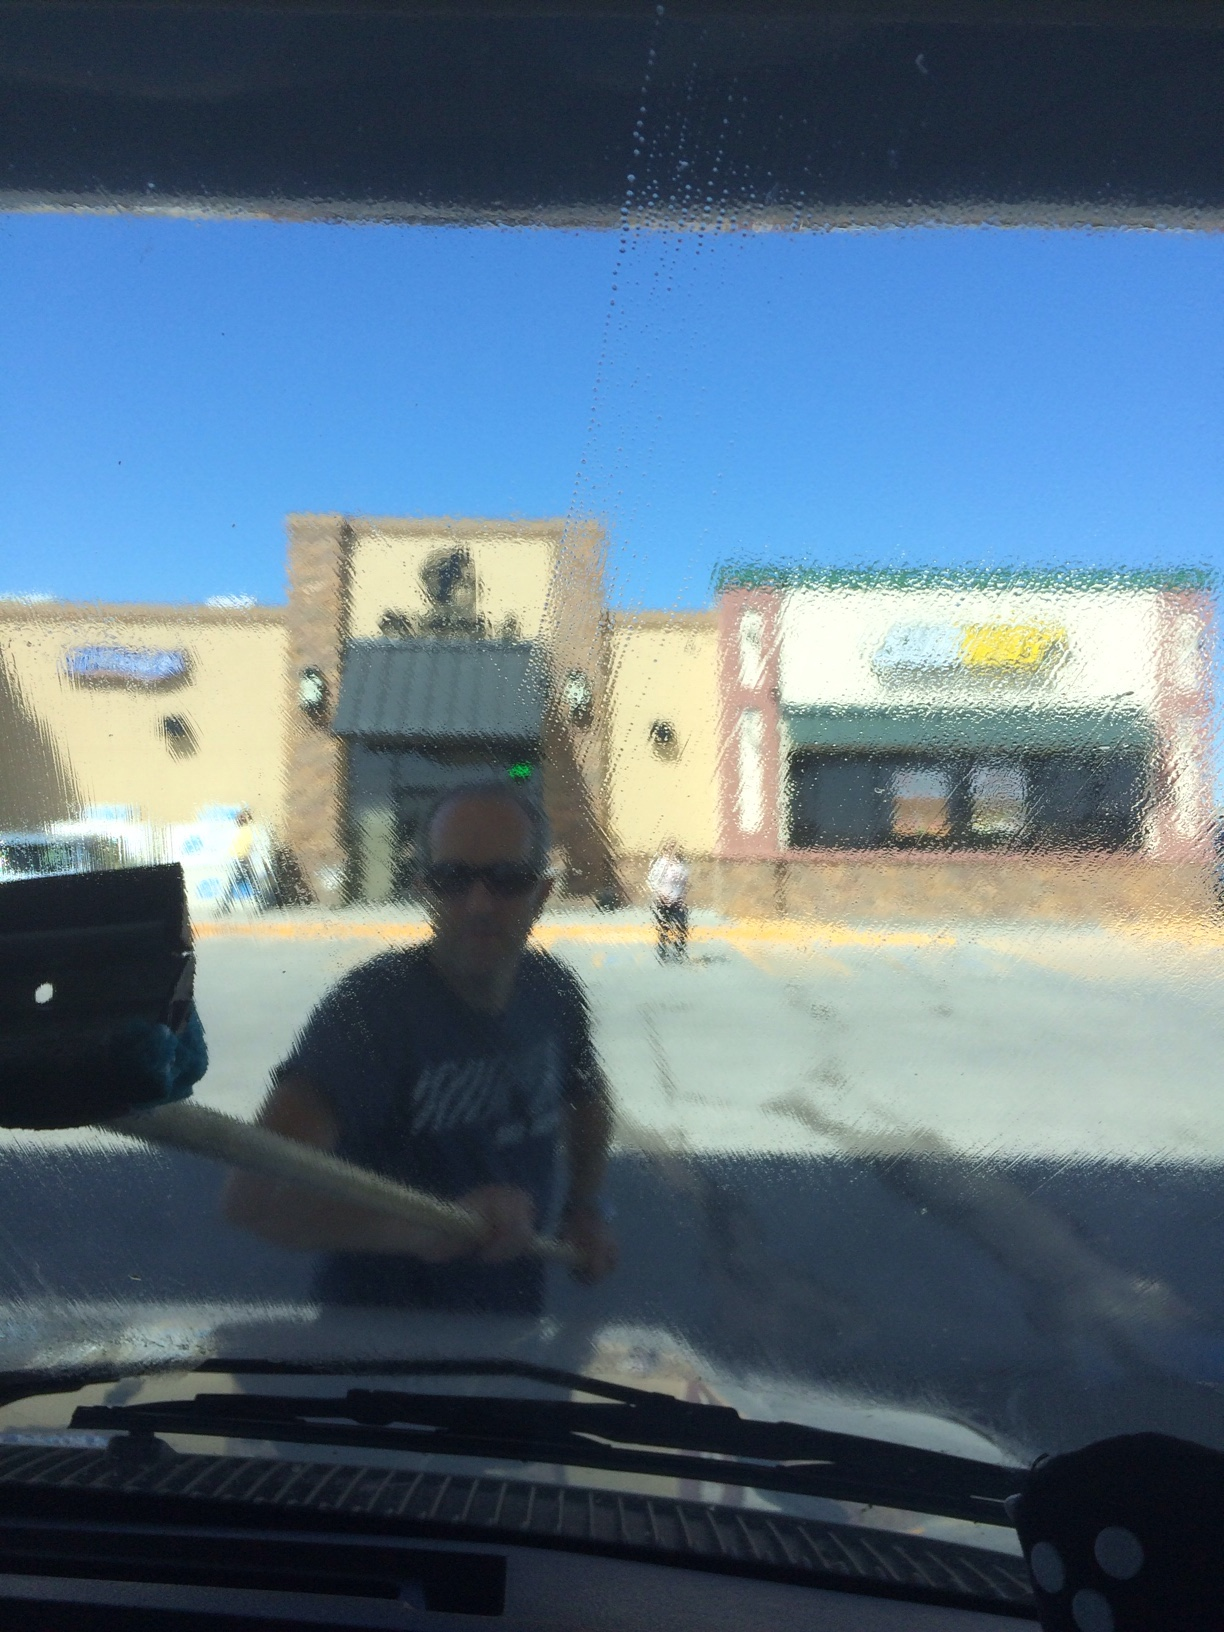 English hubby cleaning windscreen